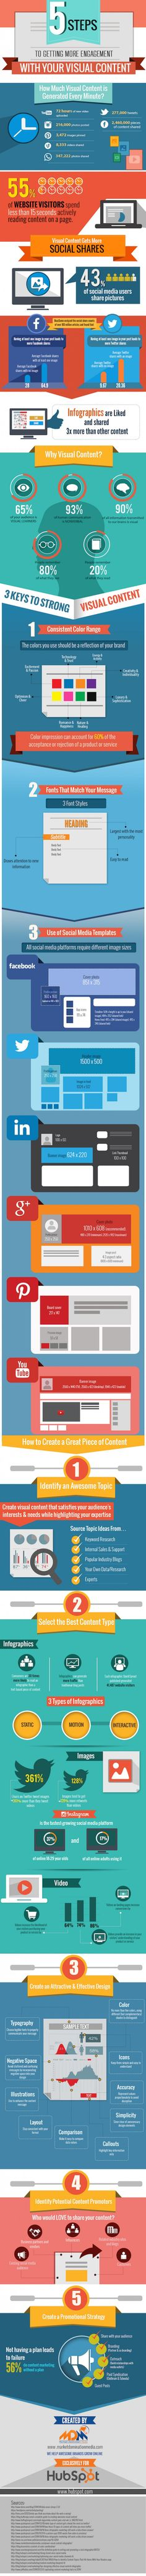 How to Get Massive Engagement With Your Visual Content #infographic @HubSpot